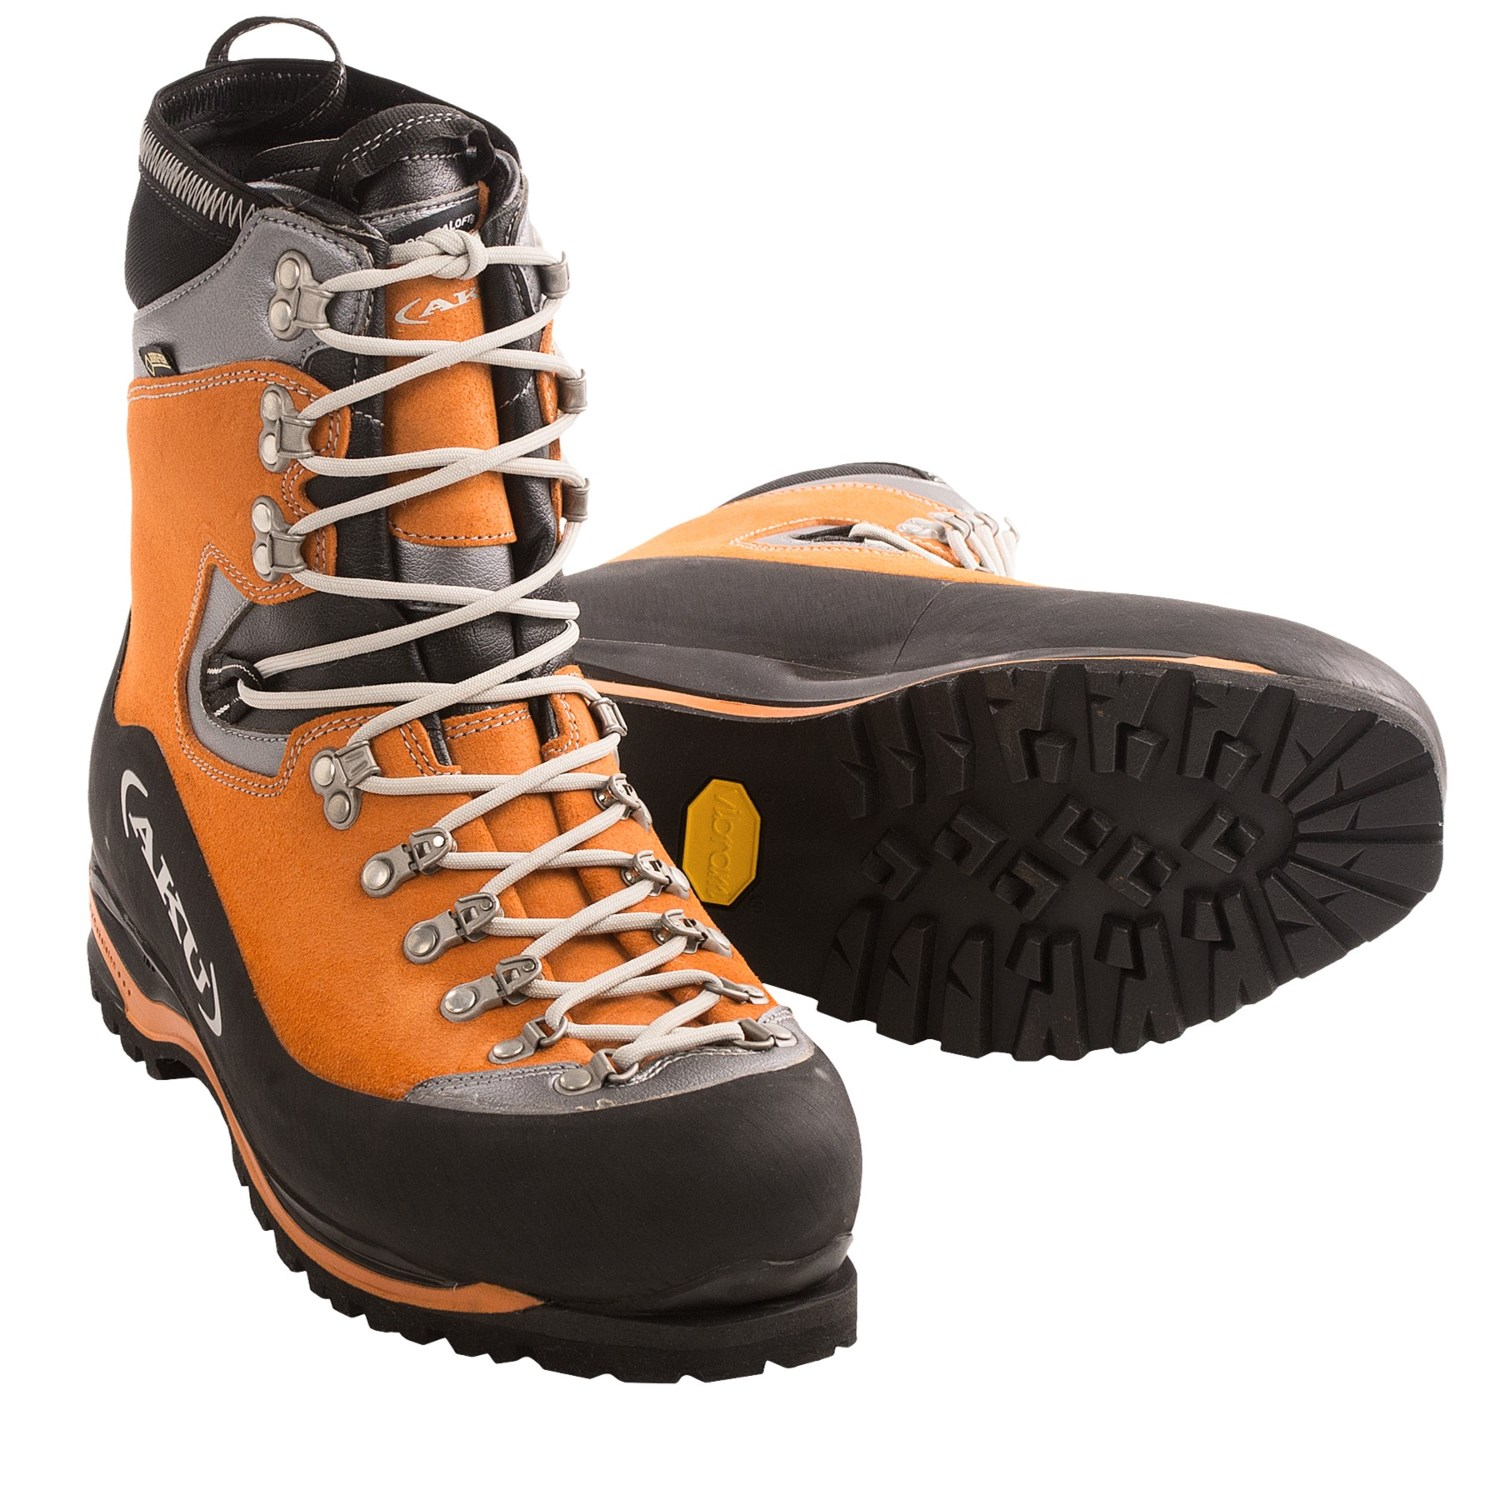 AKU Montagnard Gore-Tex® Mountaineering Boots (For Men) 7364X ...